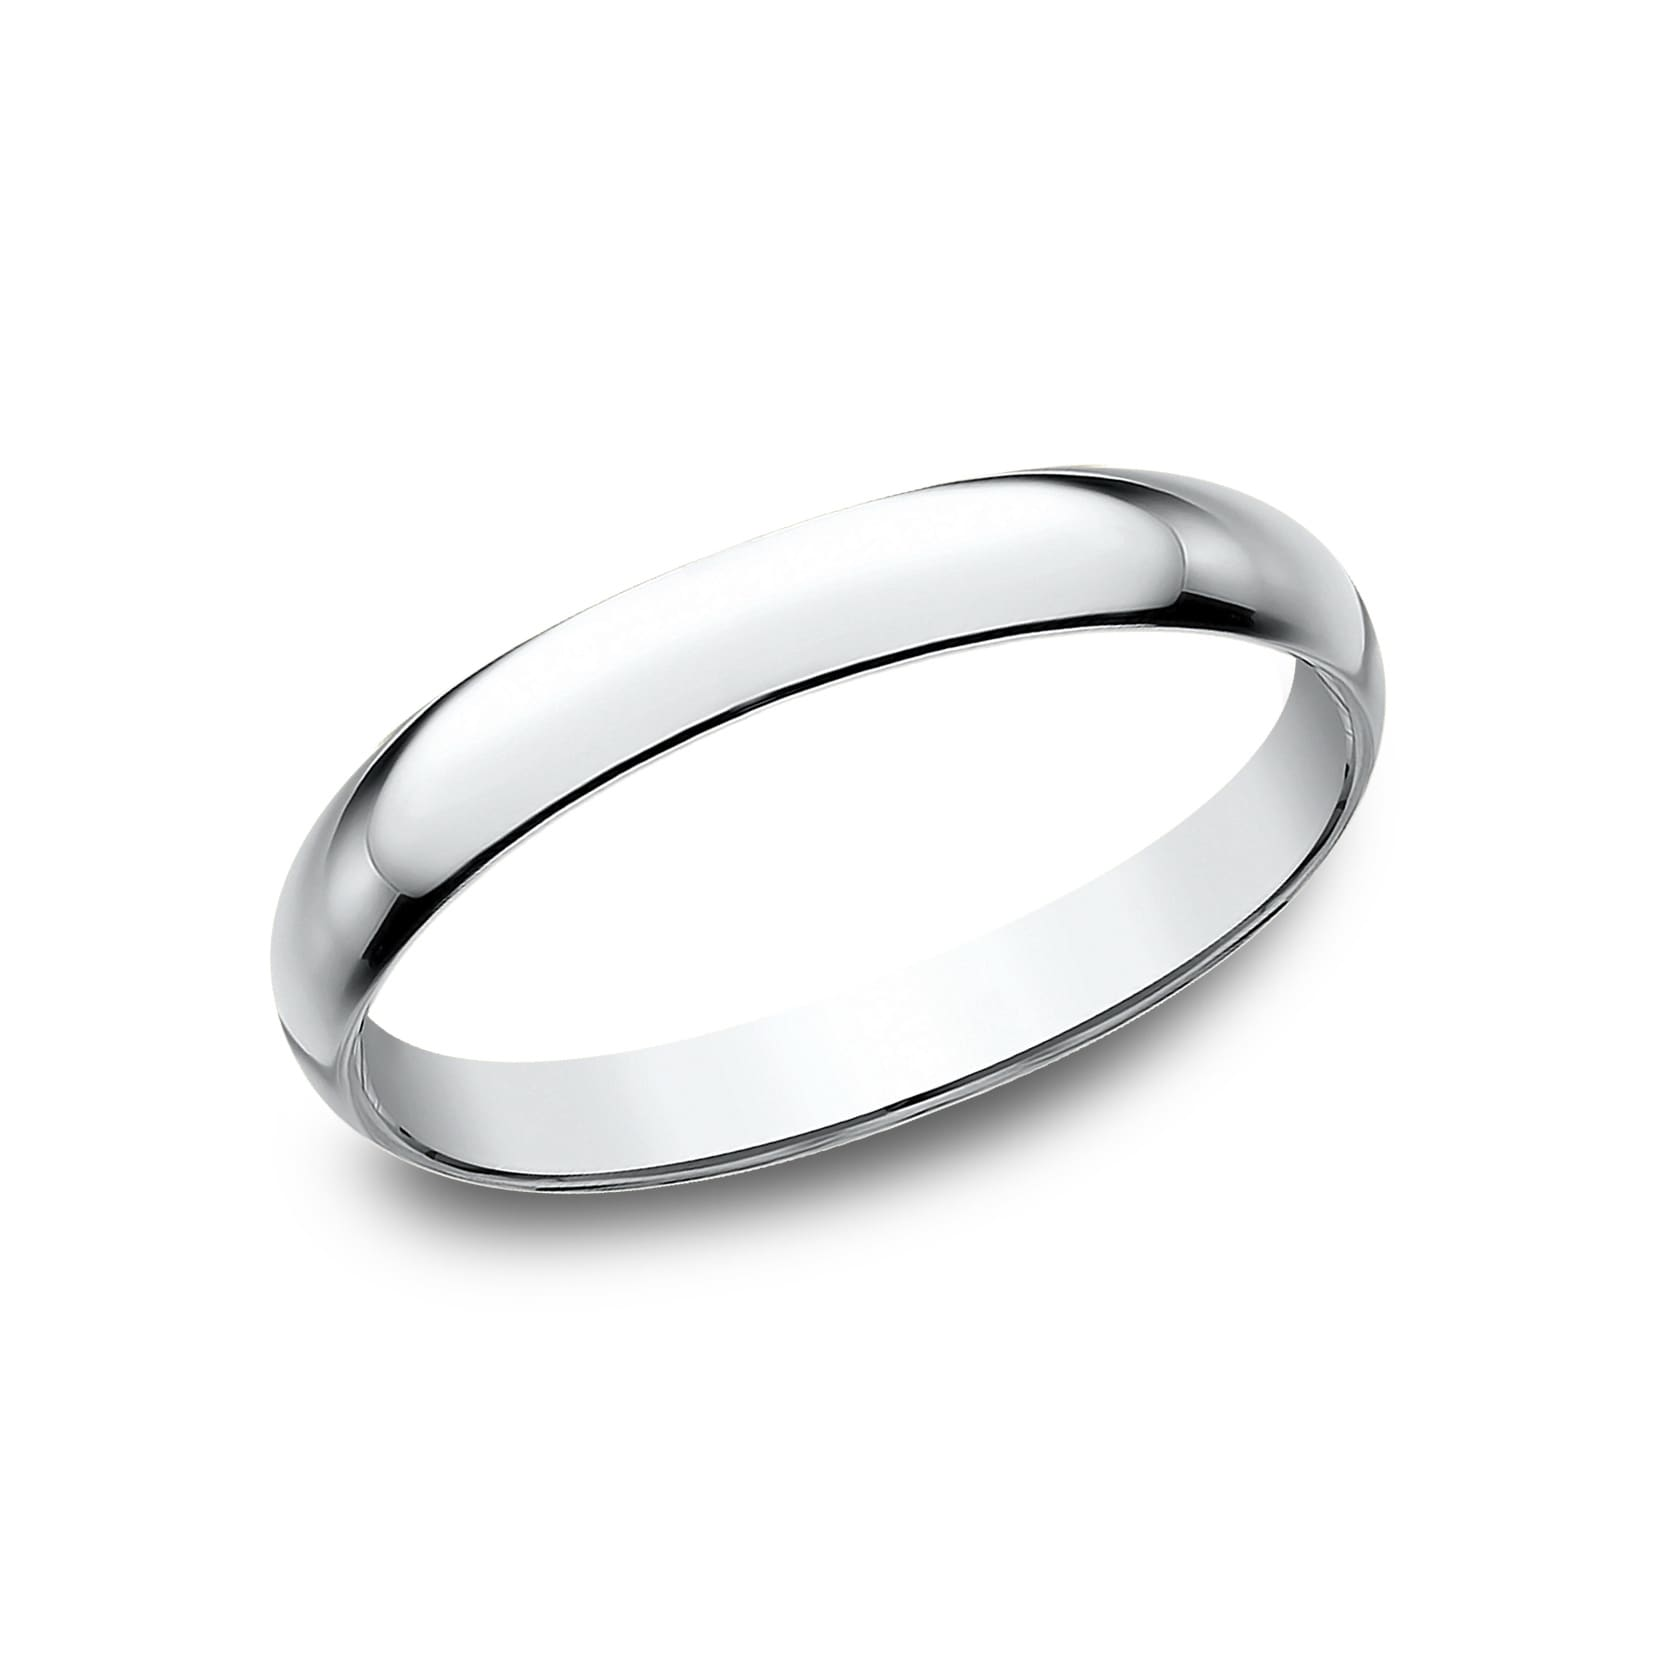 14K White Gold 2.5mm Slightly Domed Standard Comfort-Fit Wedding Band Ring for Men /& Women Size 4 to 15